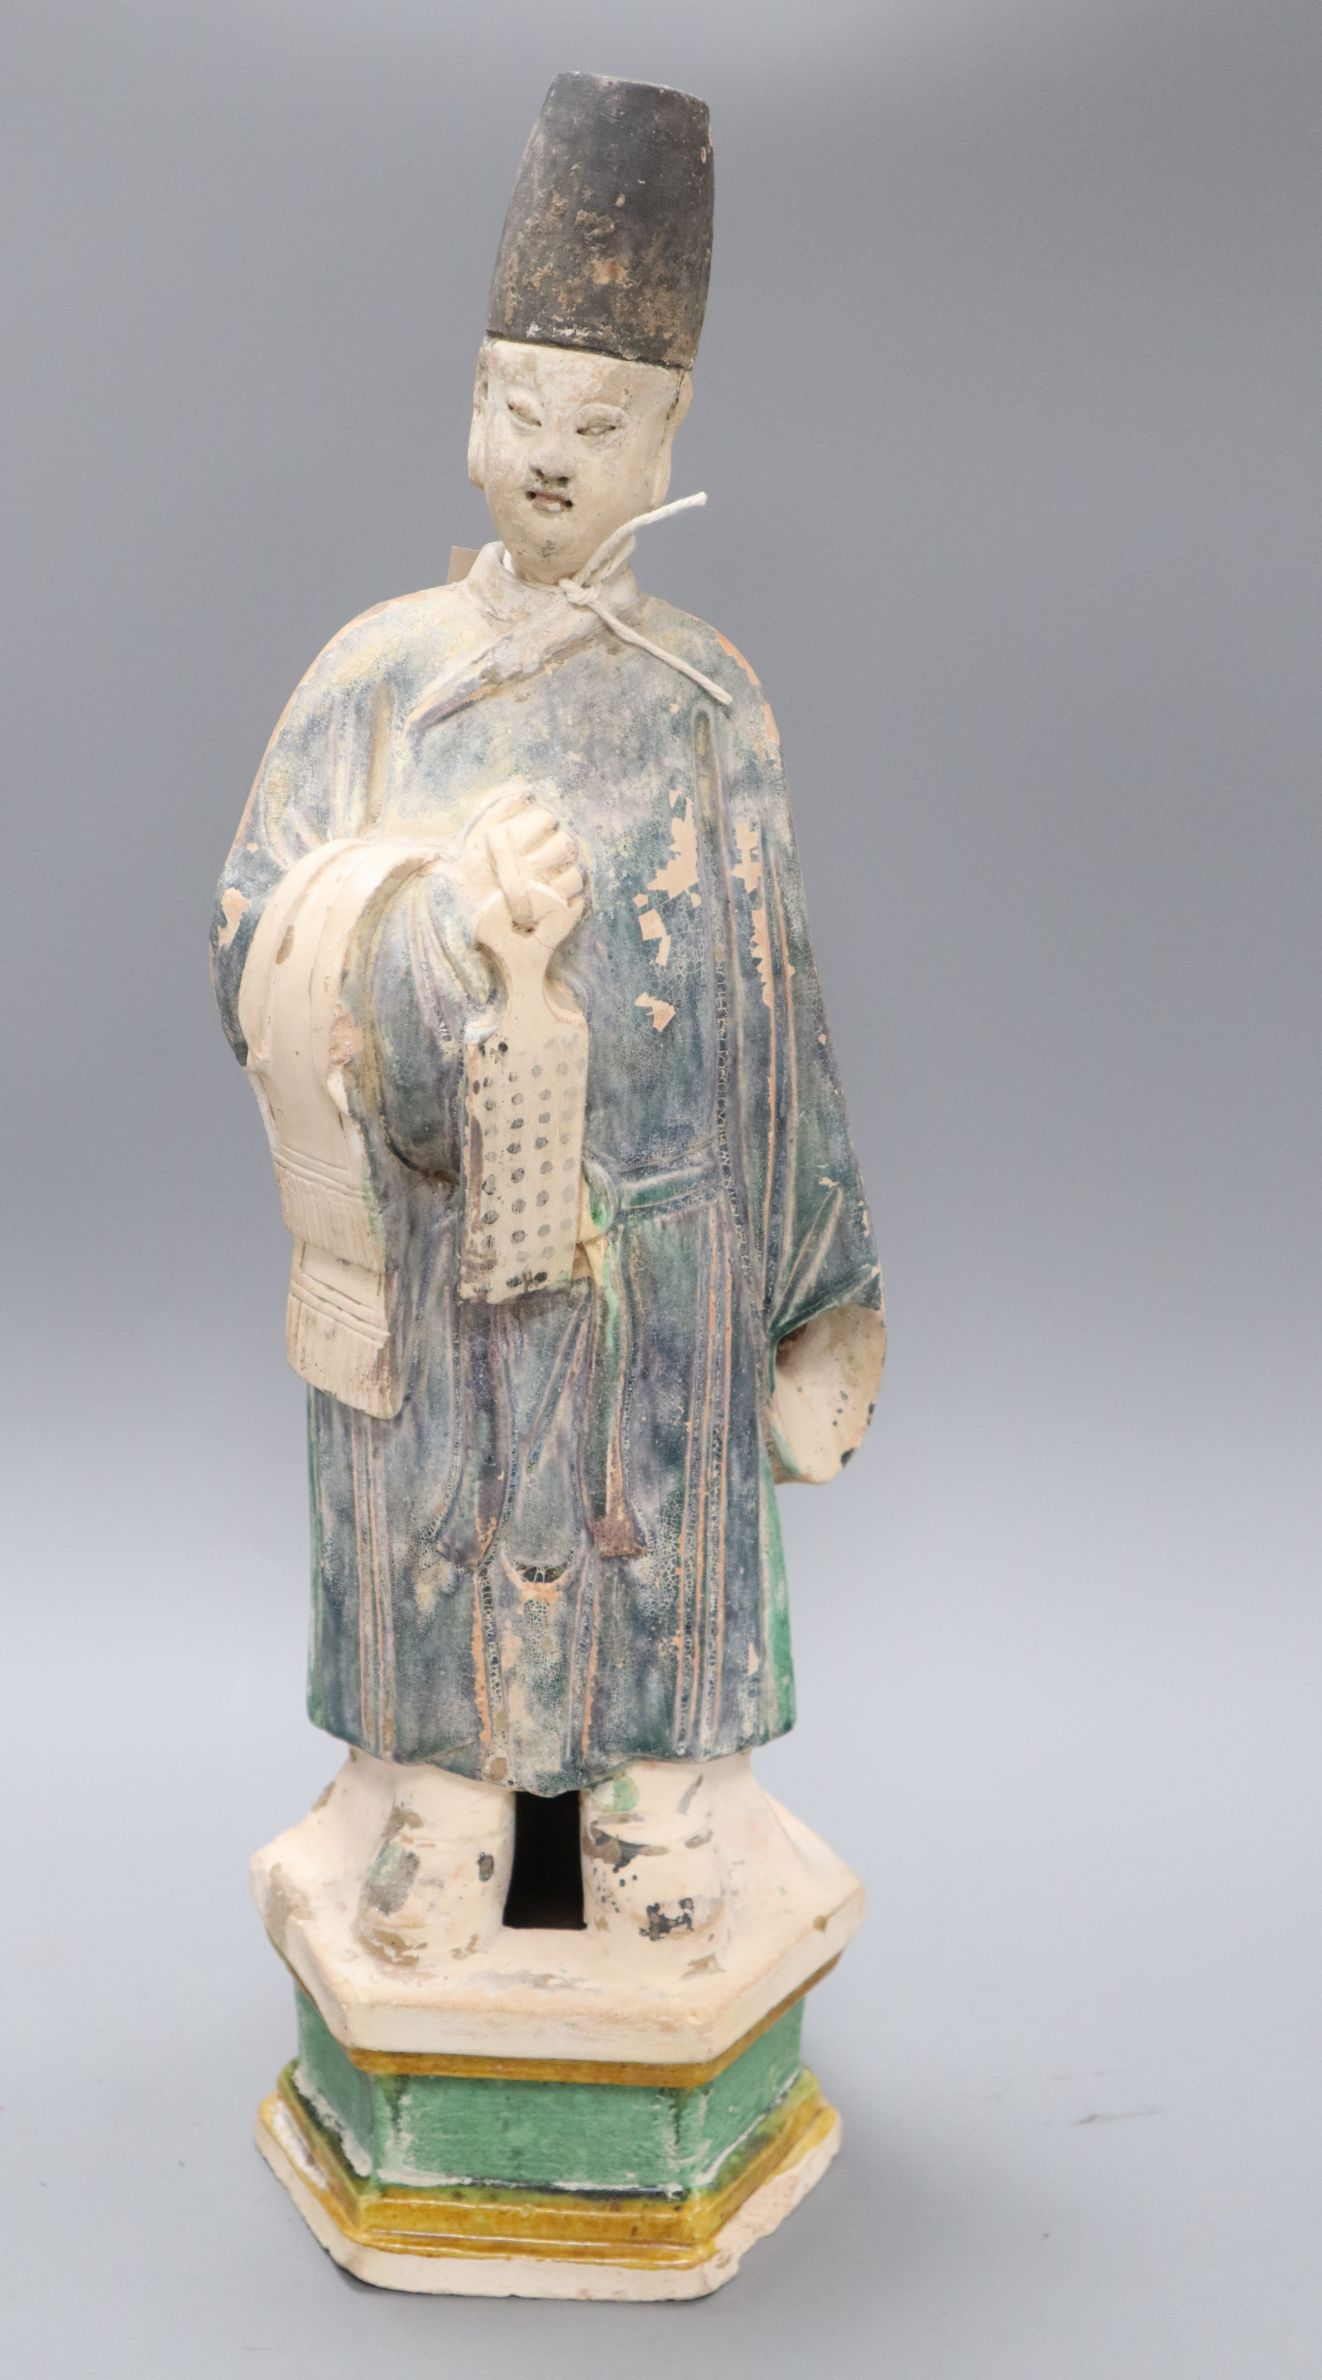 Lot 1032 - A Chinese Tang-style glazed pottery figure H.46cm